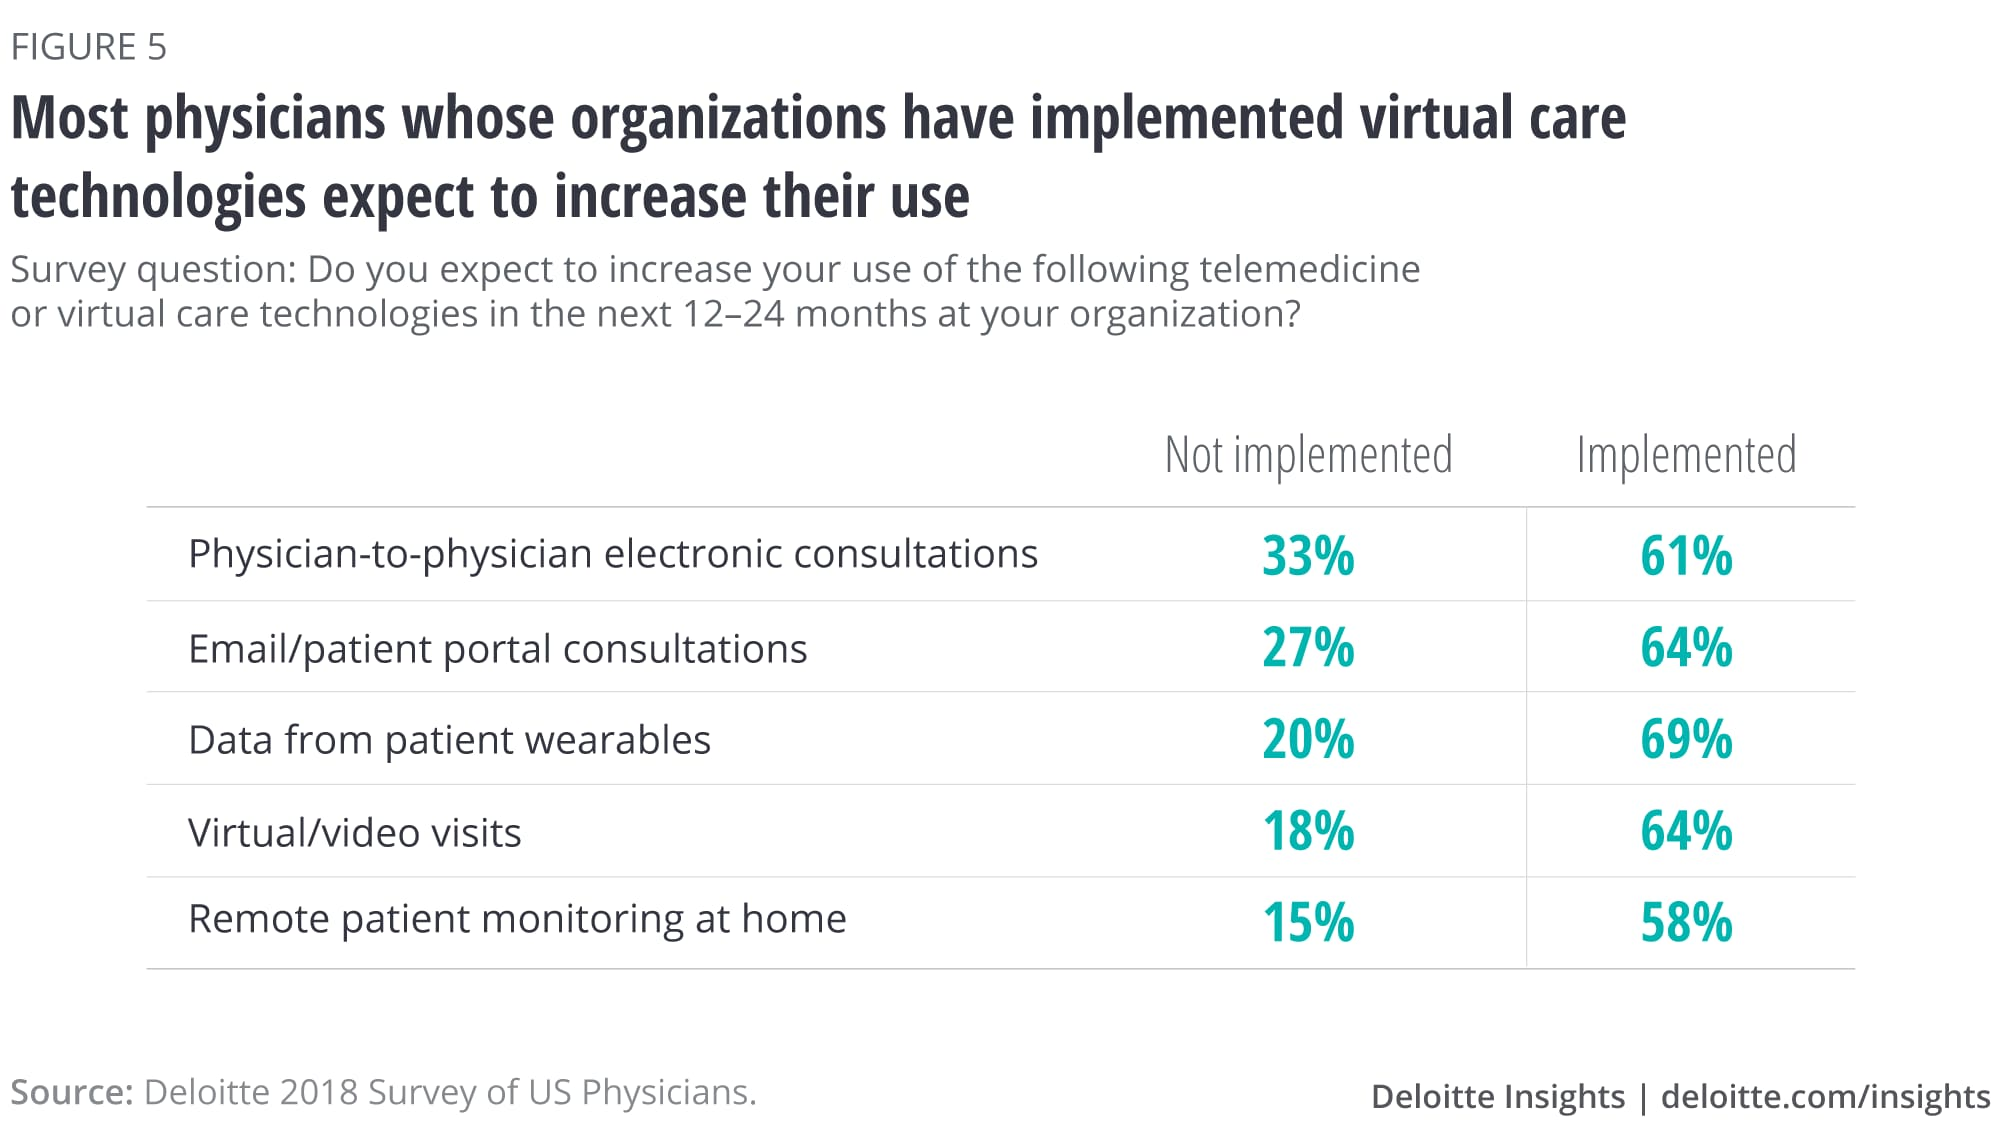 Most physicians whose organizations have implemented virtual care technologies expect to increase their use